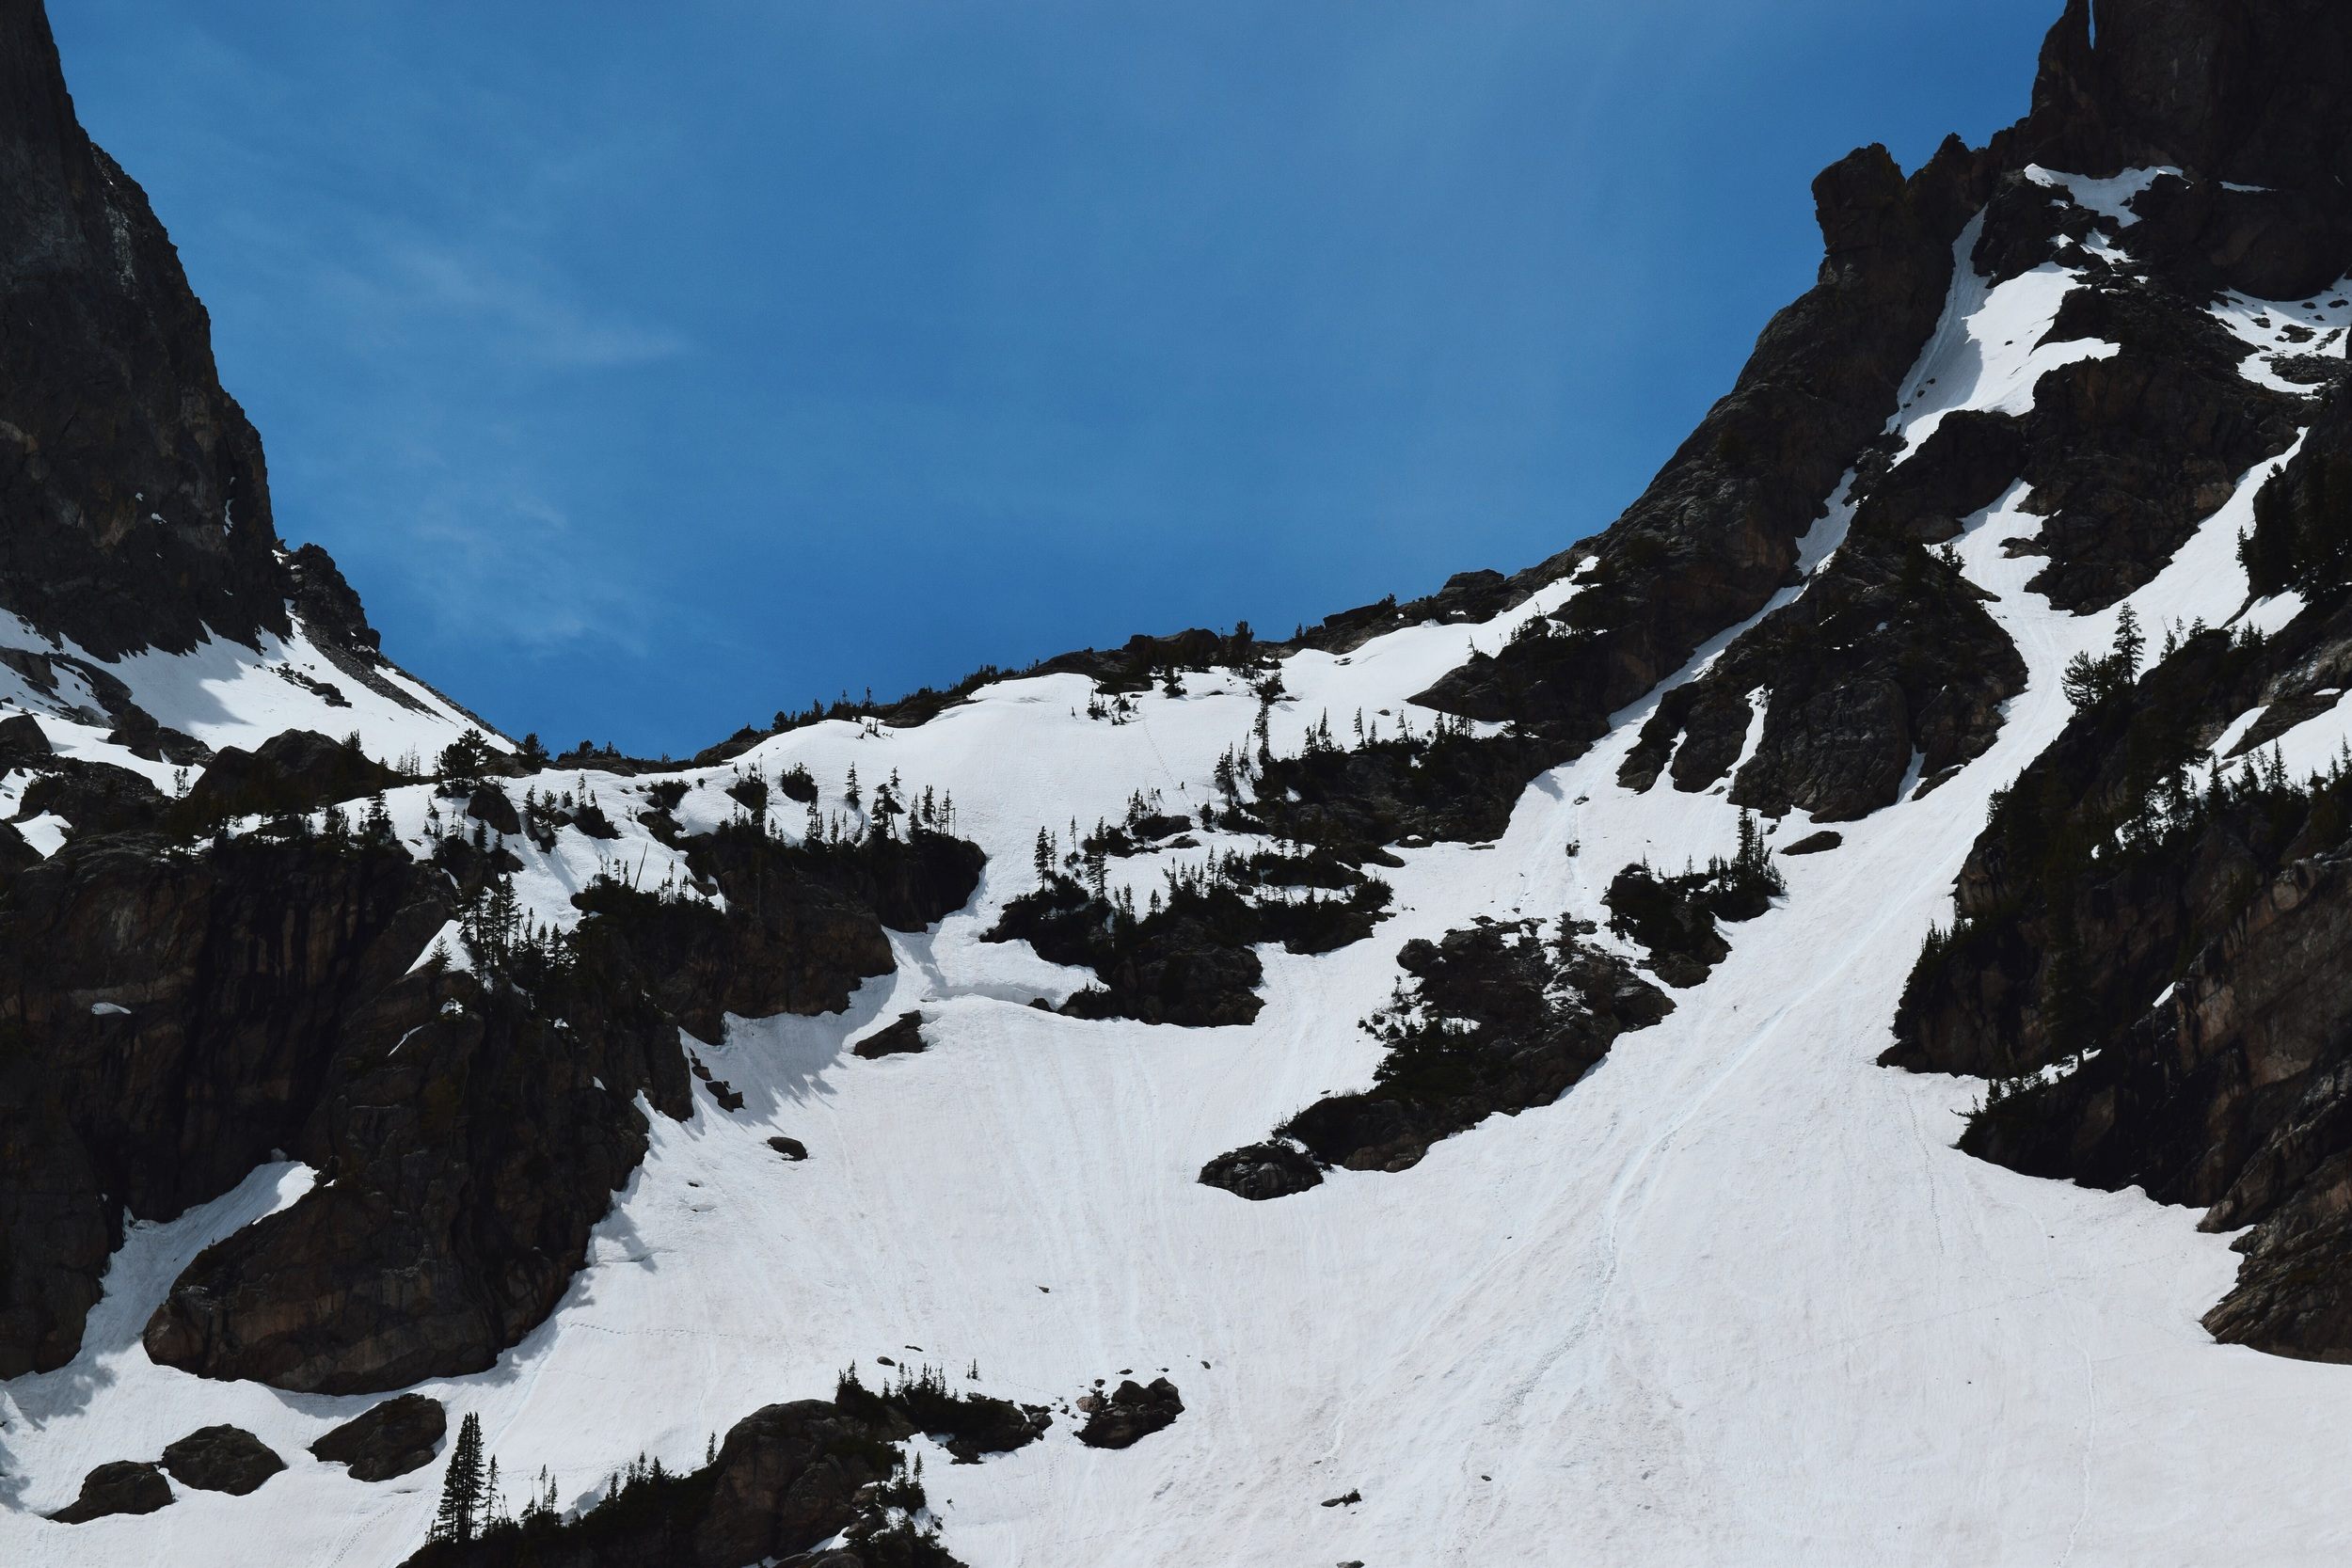 You can see the ski tracks and the mini-avalanche/snow slide on the right